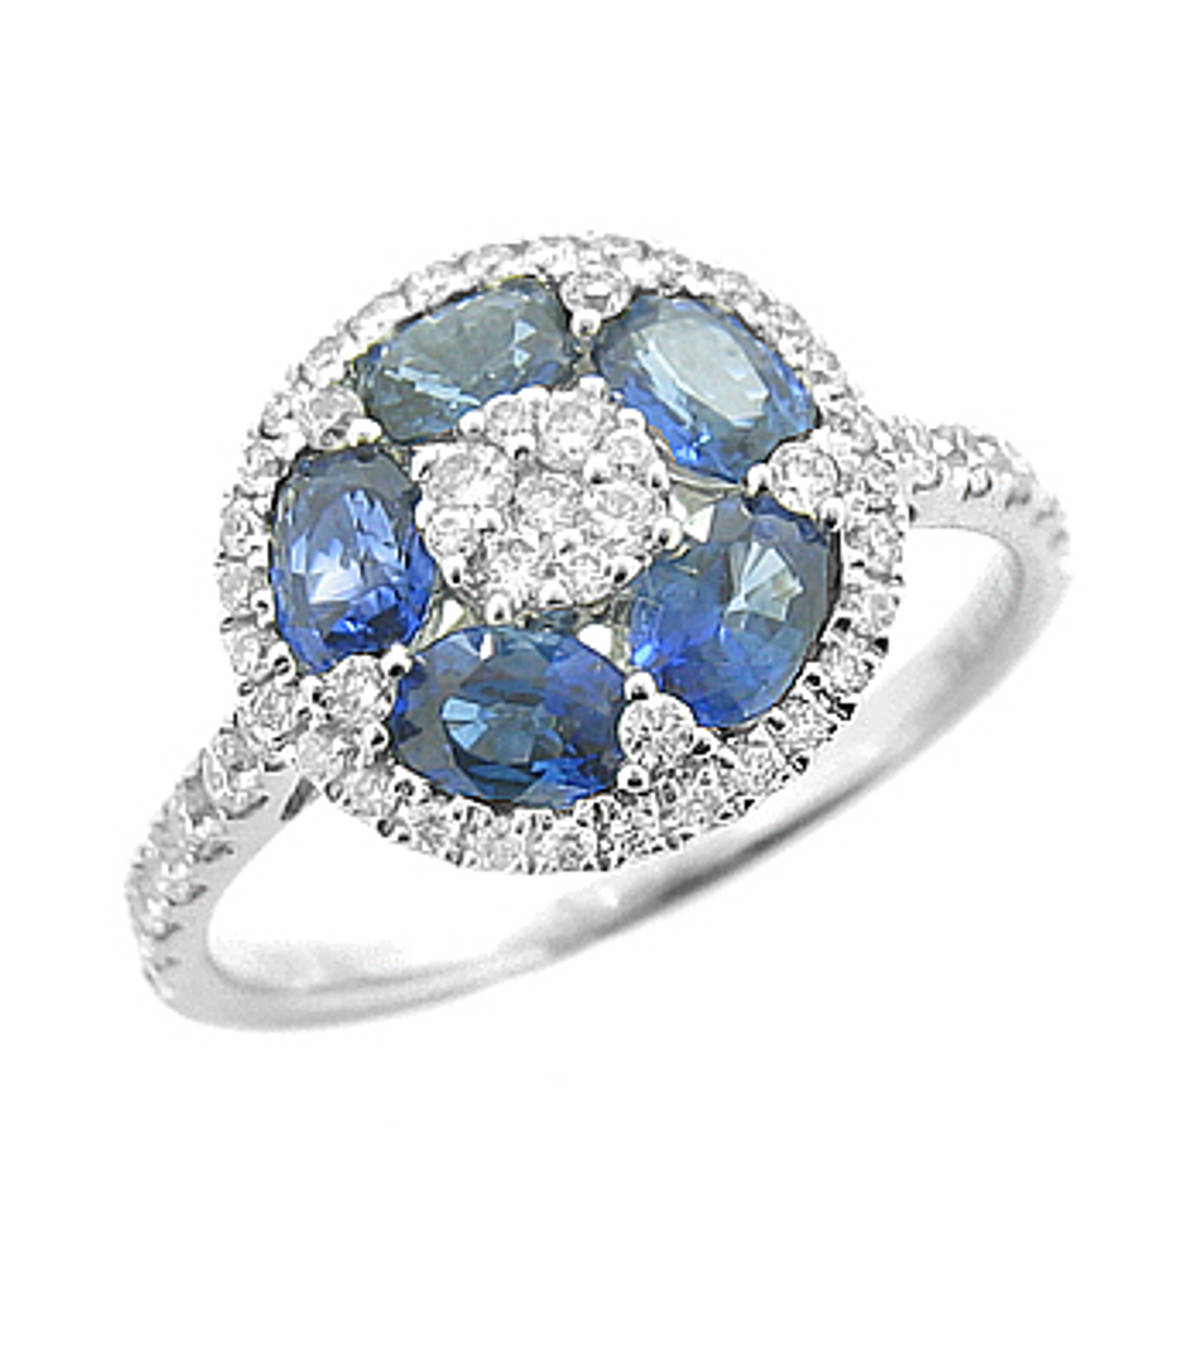 Sapphire and diamond cluster ringPictured item: sapphire: total 1.03ct/diamonds: total 0.43ct set in 18k white goid